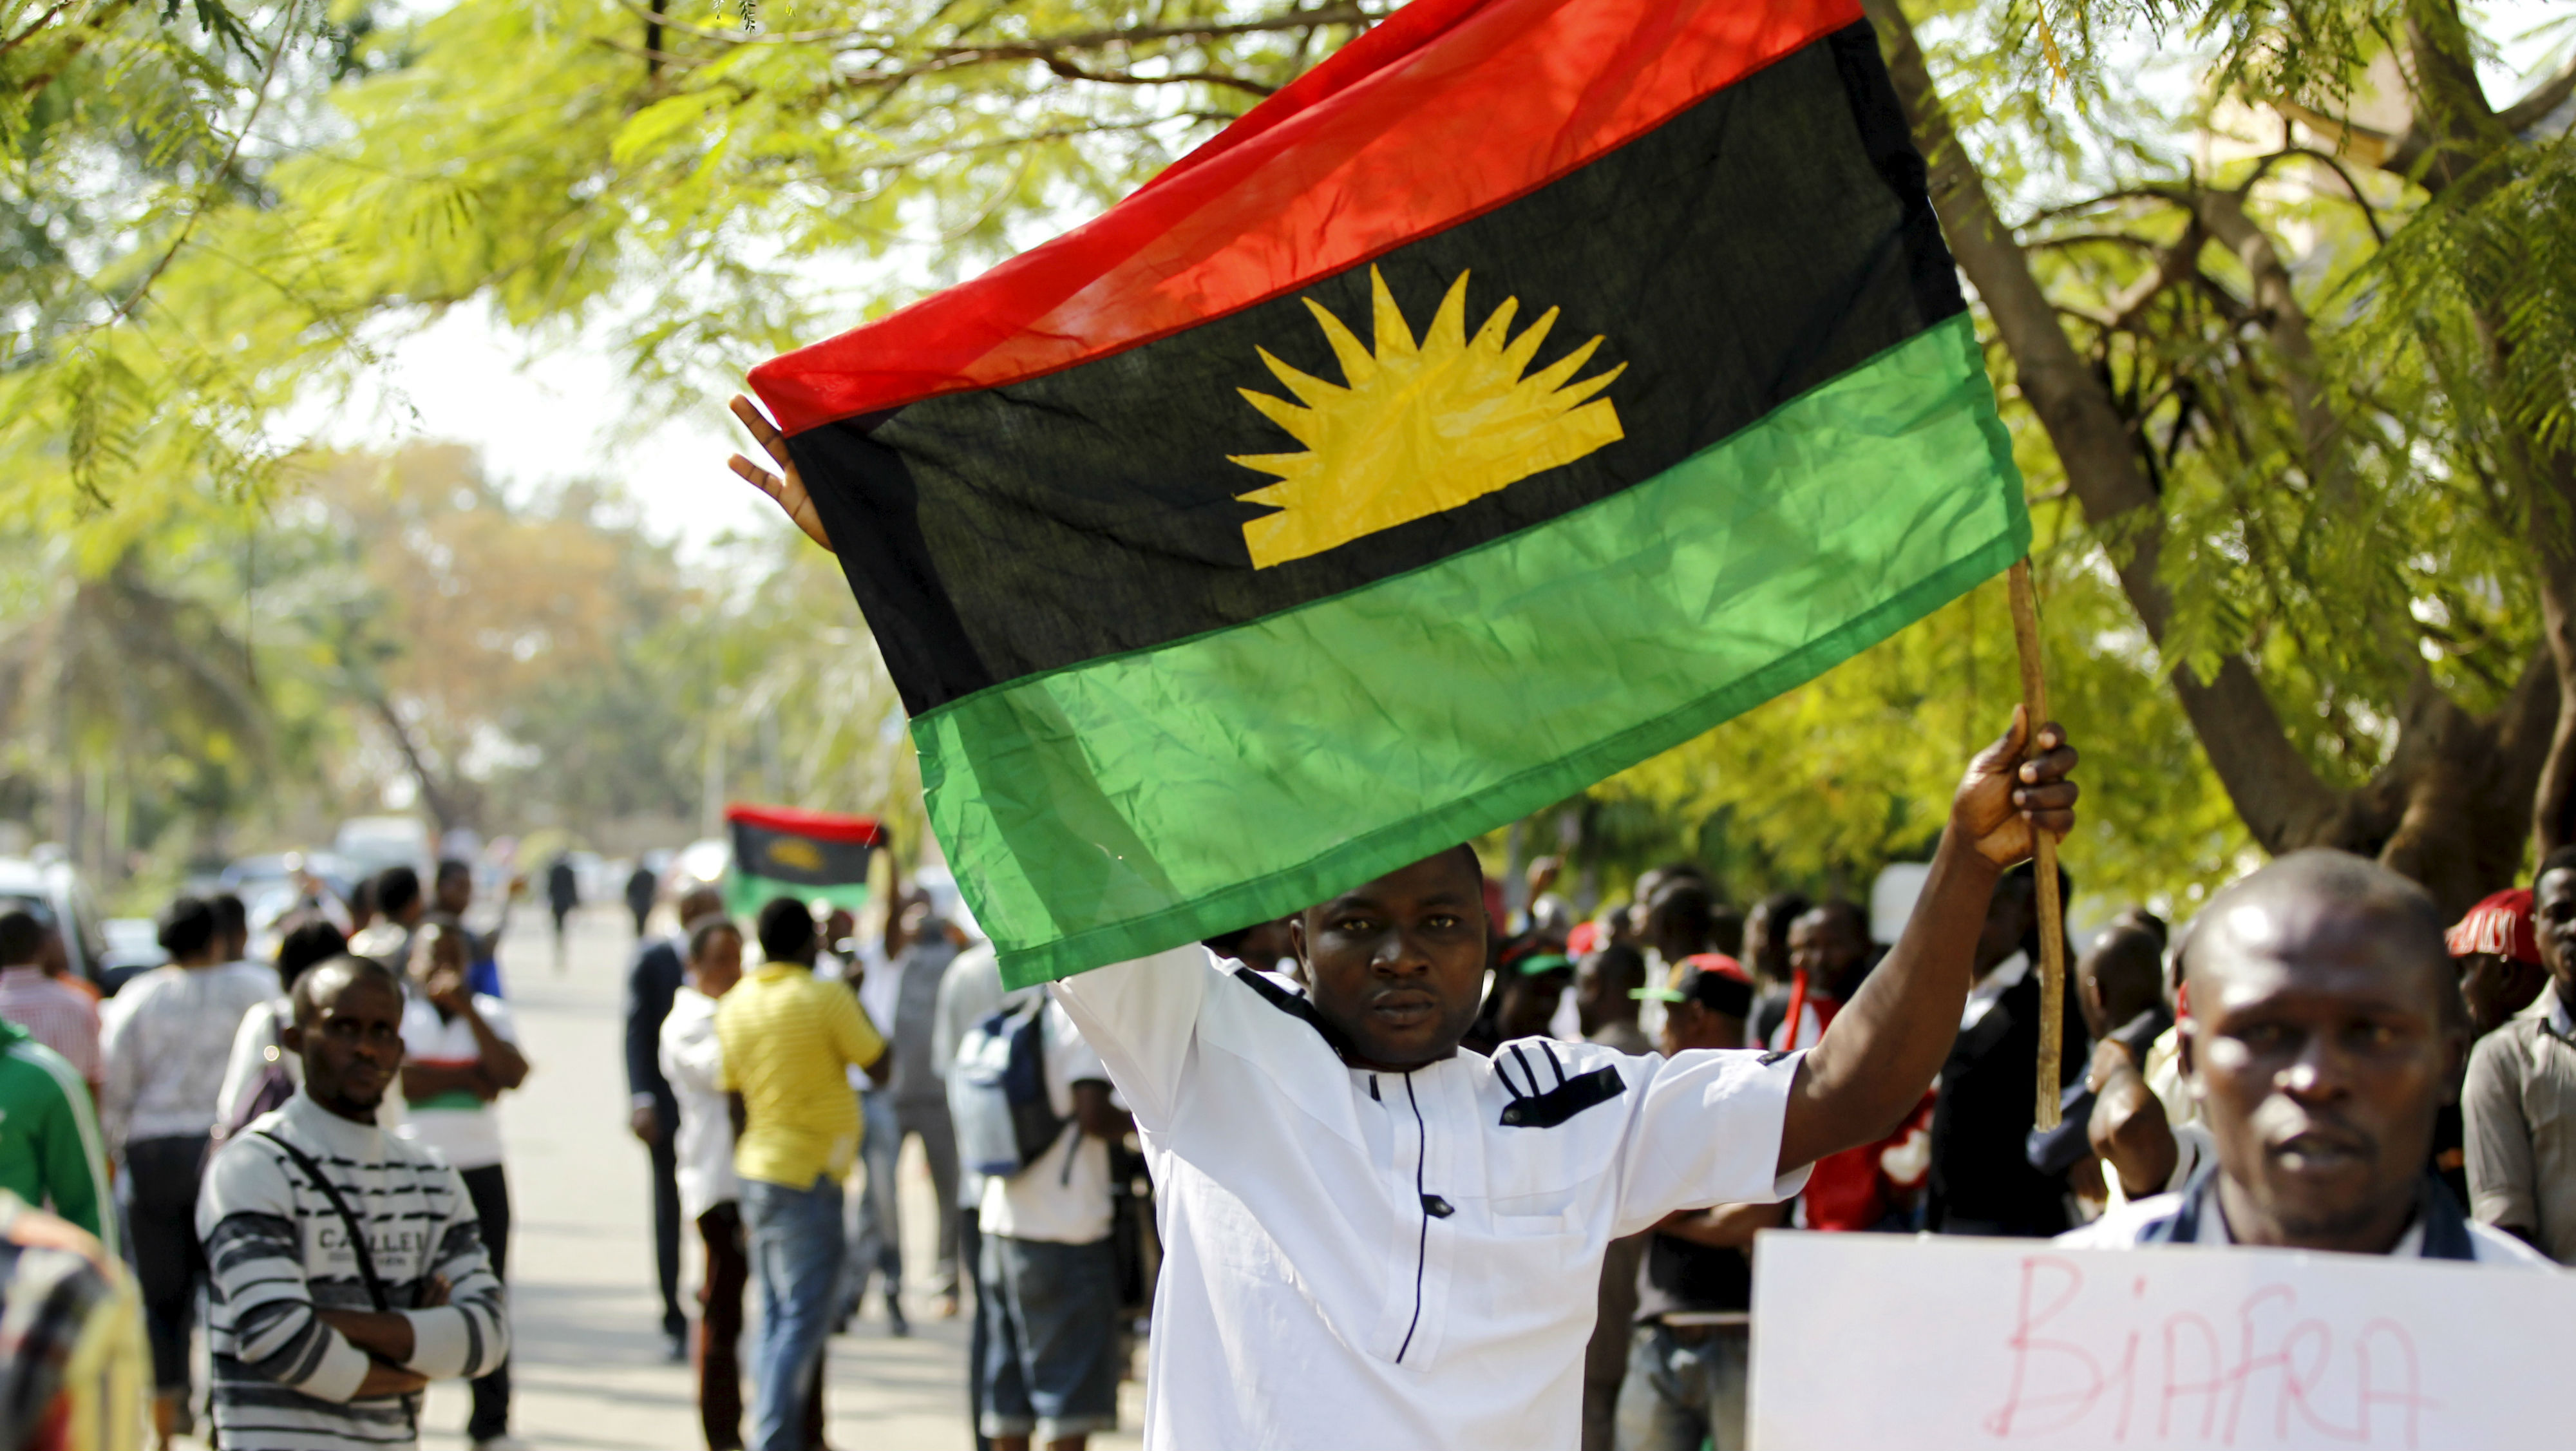 A supporter of Indigenous People of Biafra (IPOB) leader Nnamdi Kanu holds a Biafra flag during a rally in support of Kanu, who is expected to appear at a magistrate court in Abuja, Nigeria December 1, 2015. Kanu - an activist who divides his time between the UK and Nigeria, spreading his ethos on social media and Radio Biafra - was arrested on charges of criminal conspiracy and belonging to an illegal society. REUTERS/Afolabi Sotunde